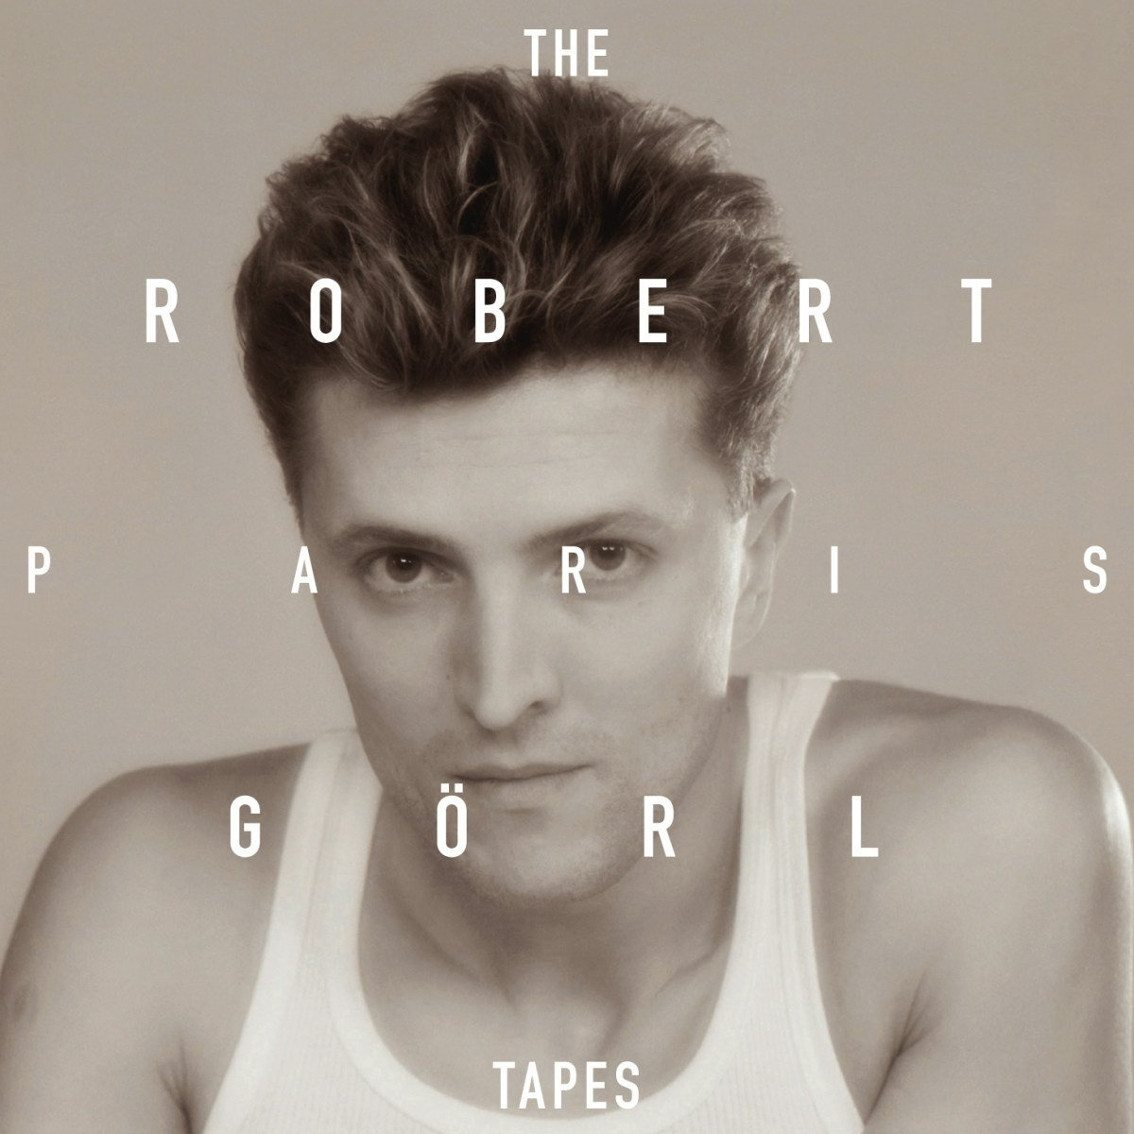 Robert Görl (DAF) finally releases lost Paris tapes on vinyl and CD